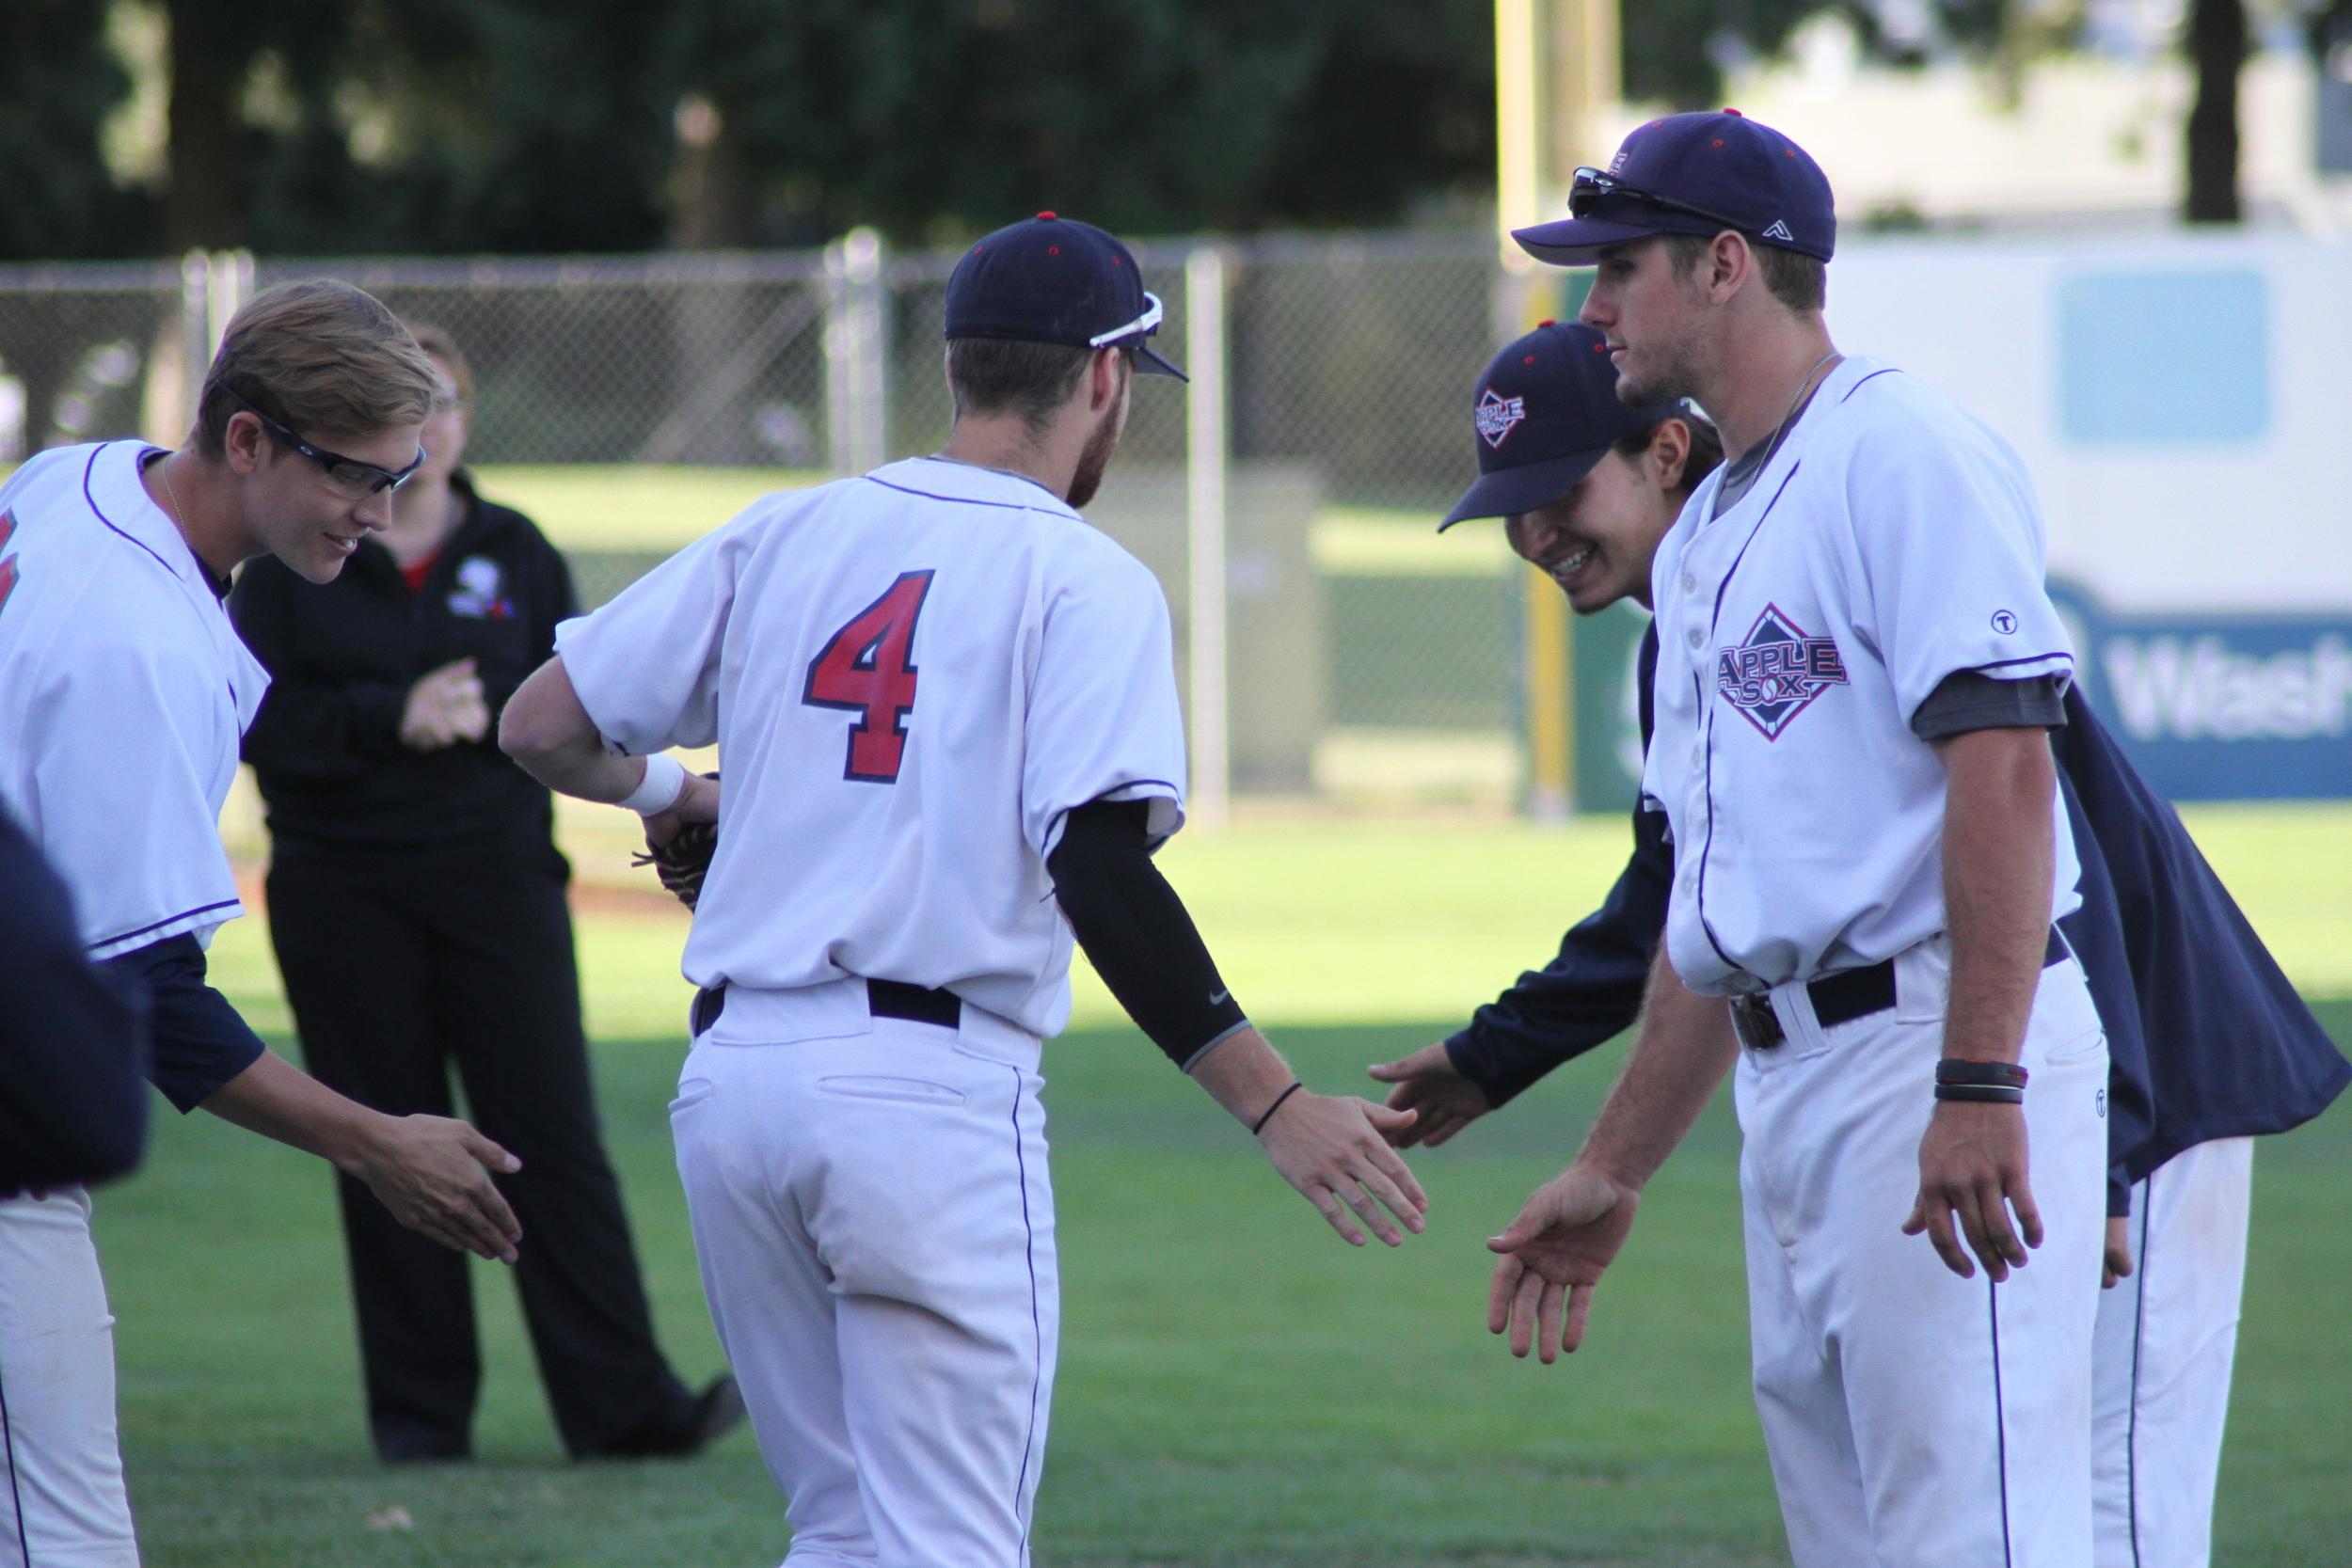 The Wenatchee AppleSox play three non-WCL games this weekend, starting Friday night at 7:05 p.m. vs. the San Francisco Seals.